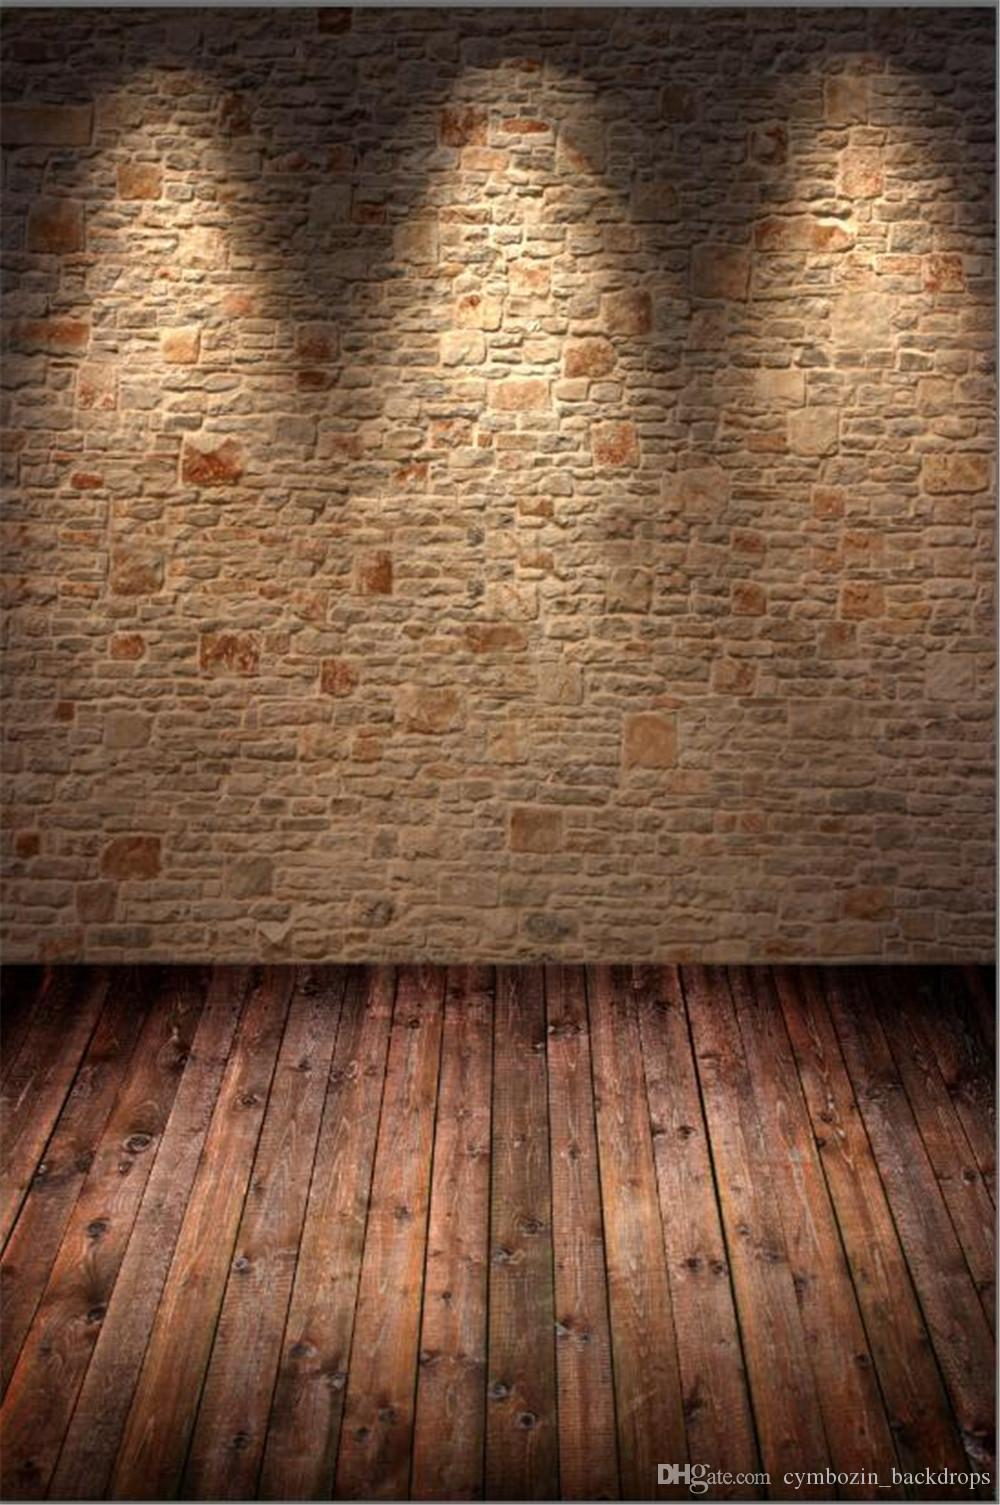 Vintage Brick Wall Wedding Photography Backdrops Brown Wooden Floor Printed Light Interior Room Kids Children Photo Backgrounds for Studio